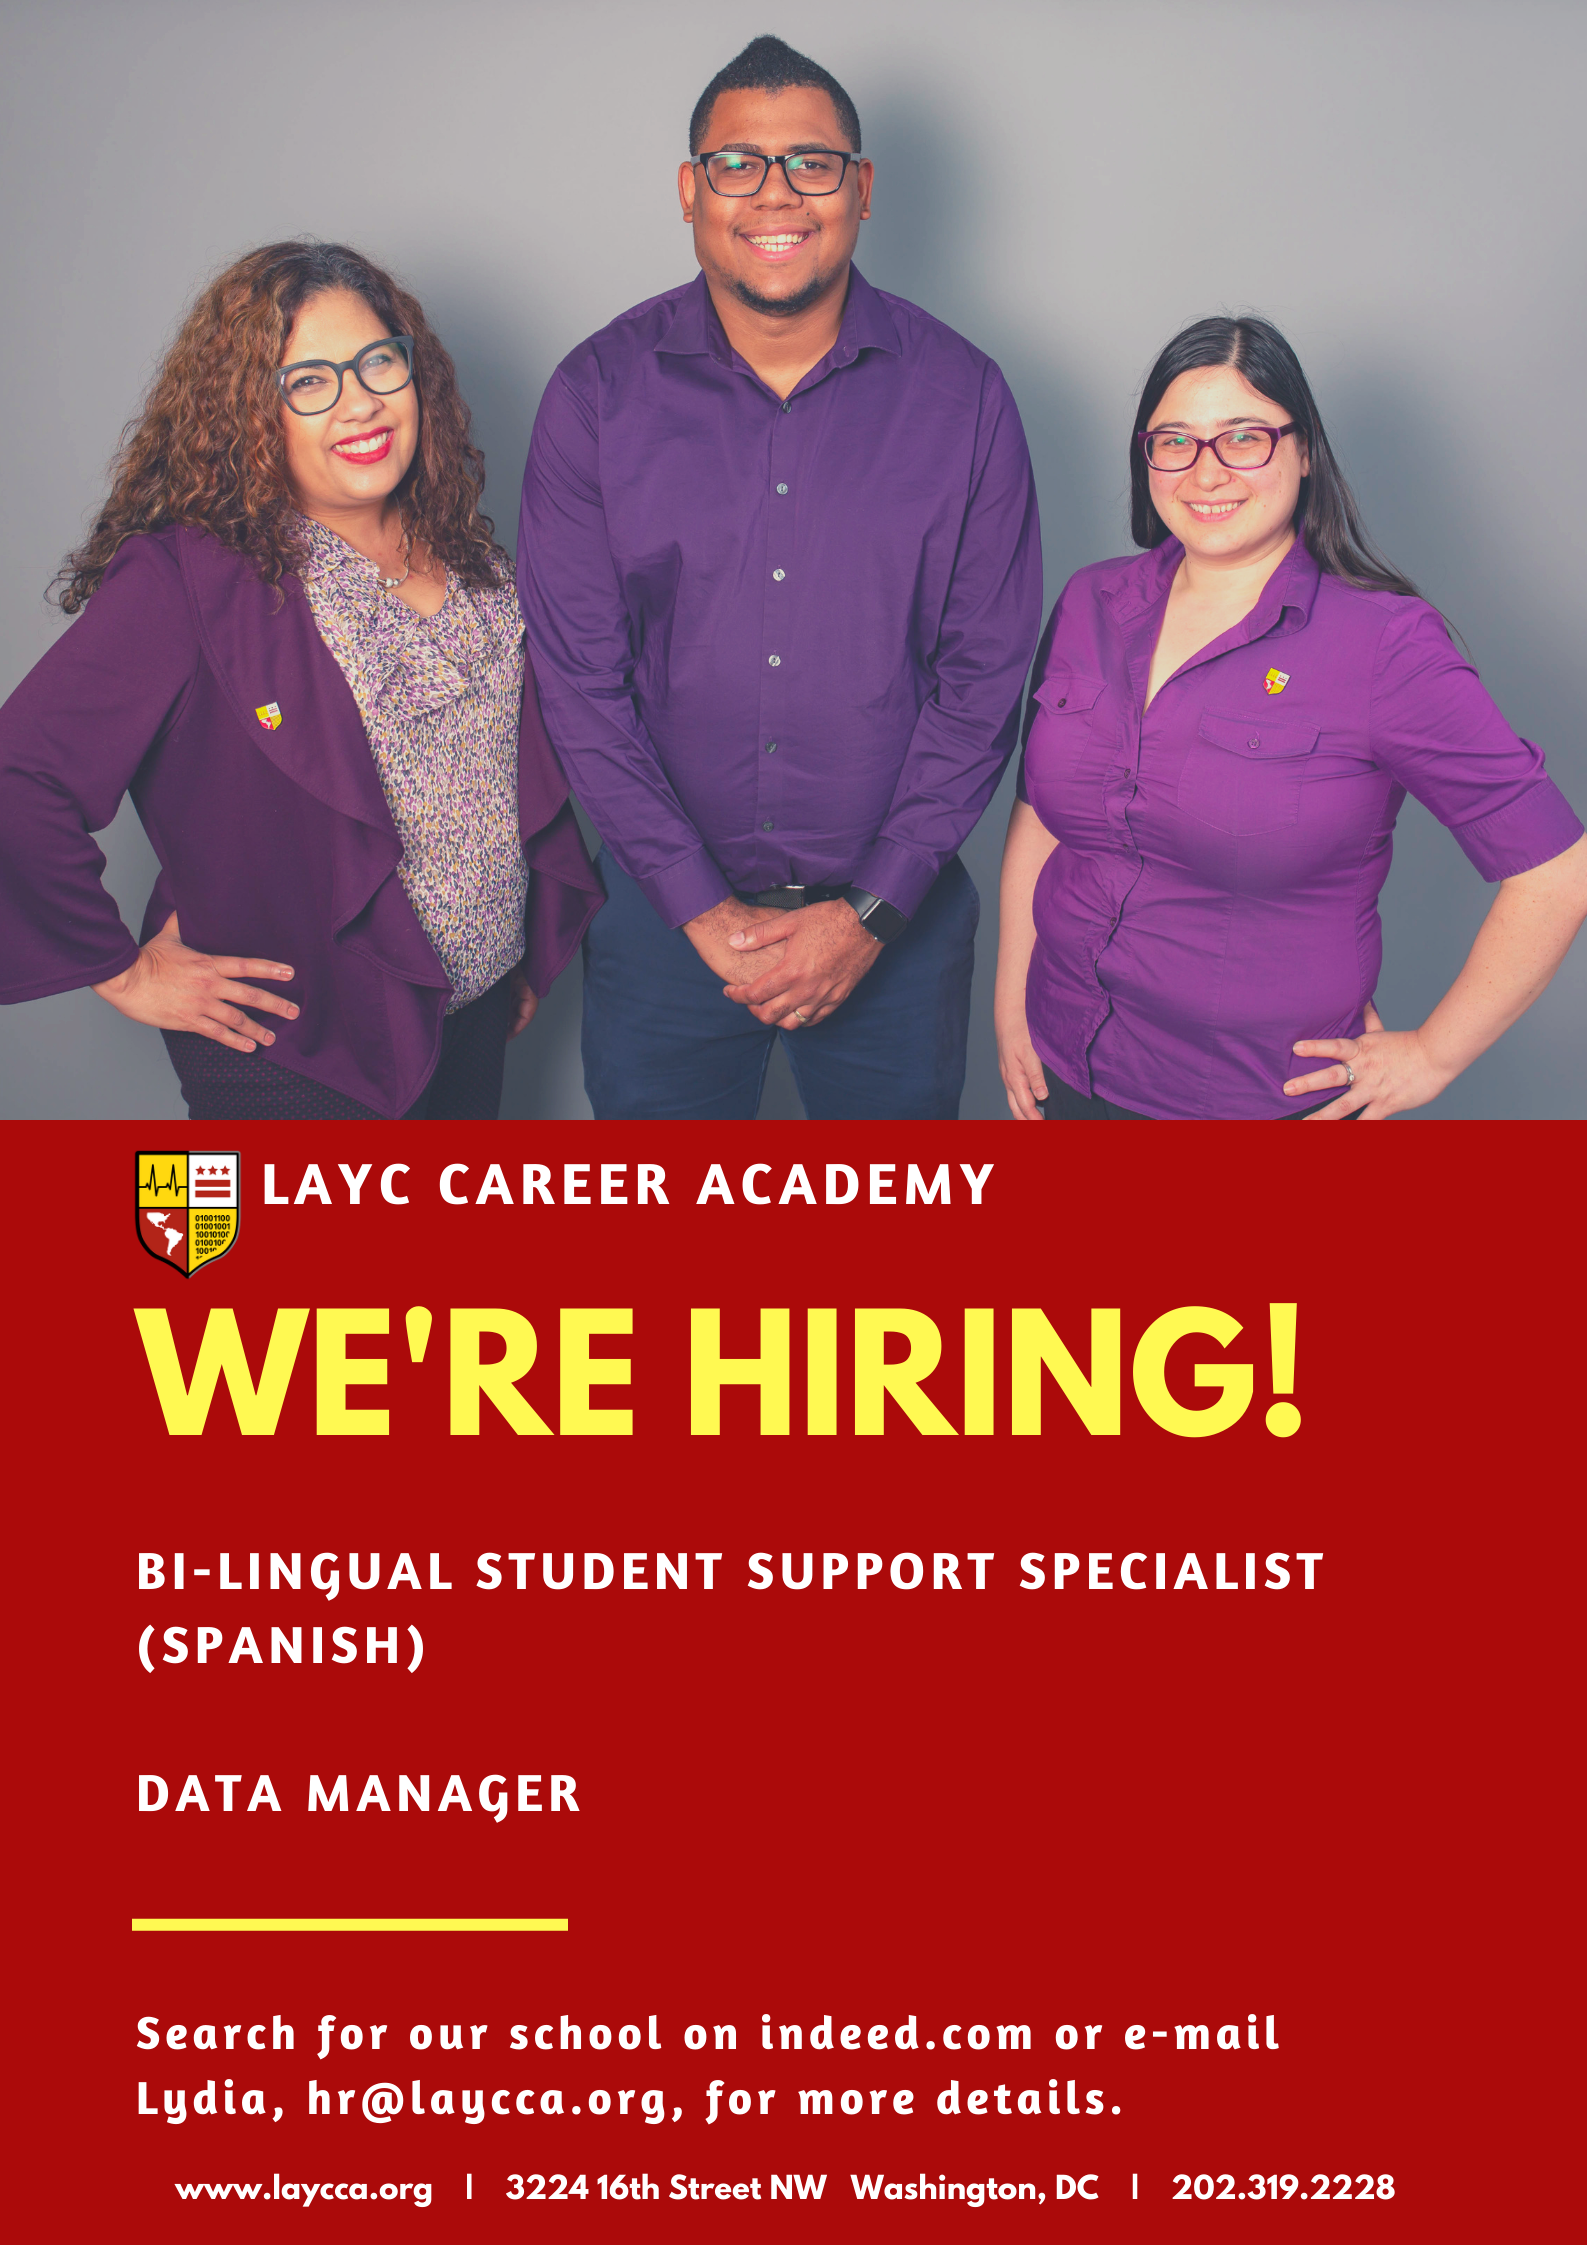 Student support specialist, data manager, director of data, job opening, hiring, apply